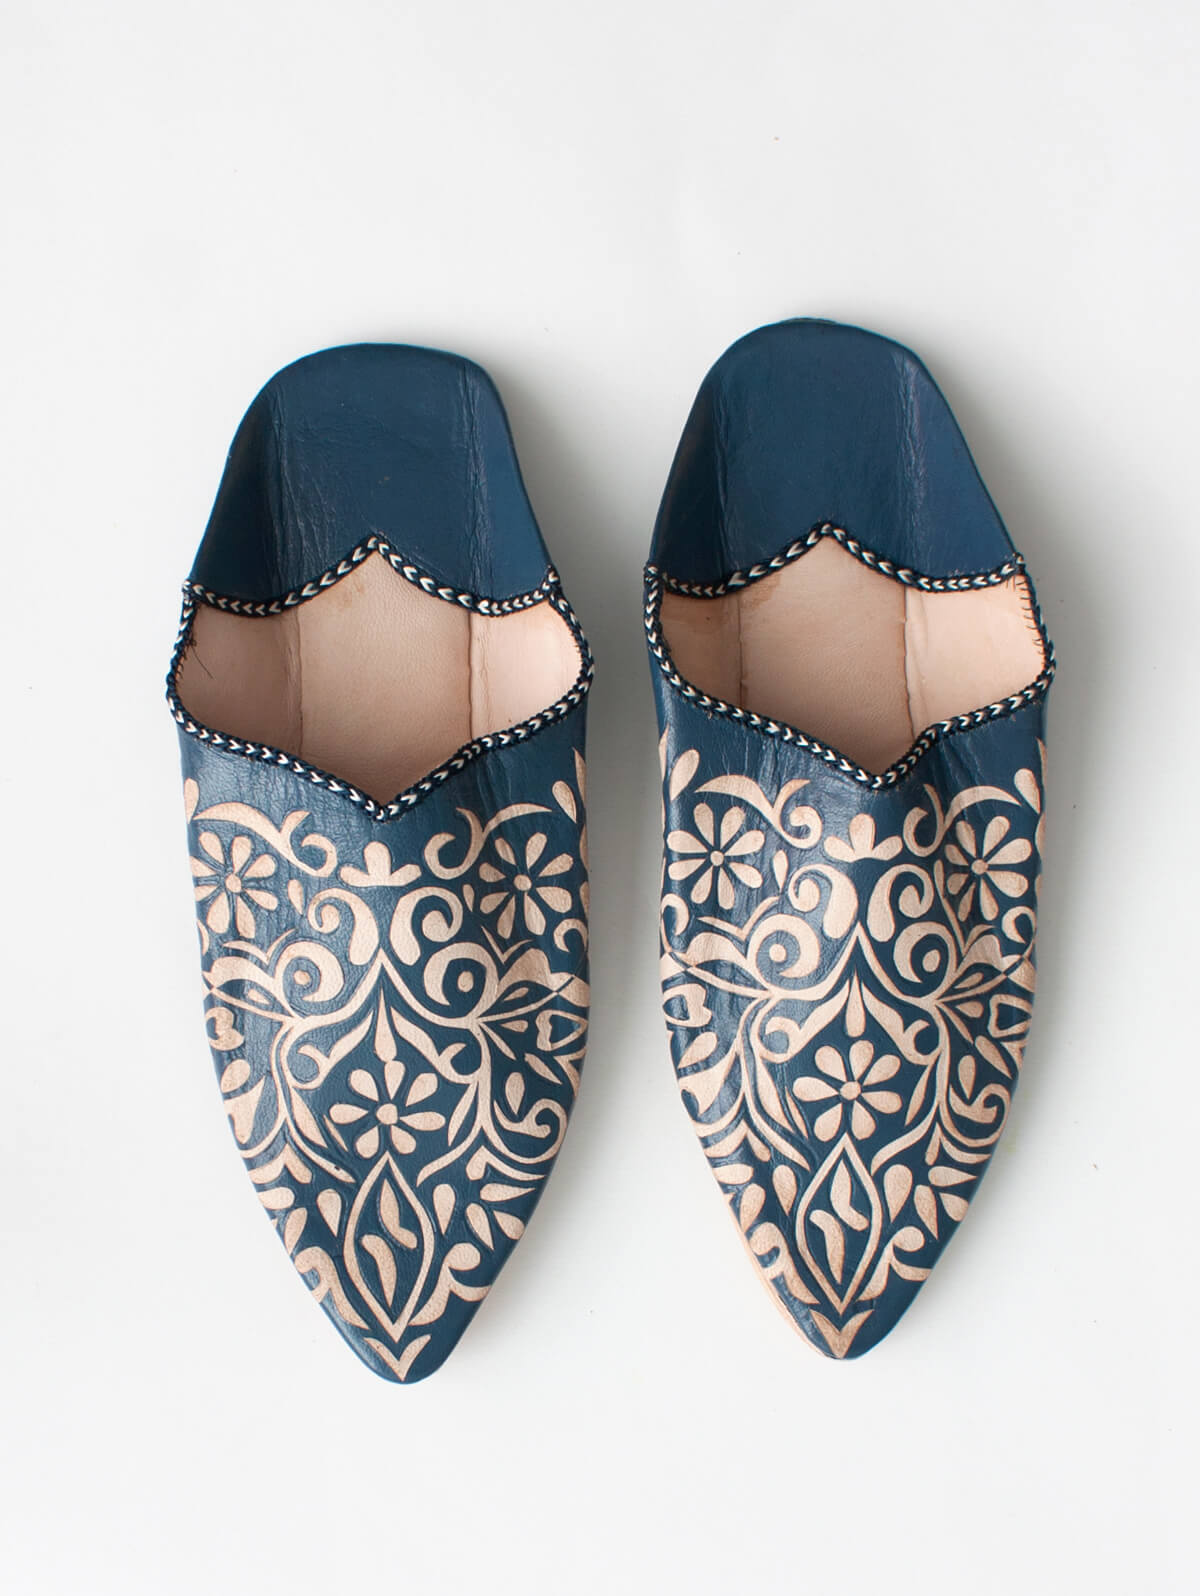 Decorative Babouche Slippers, Indigo